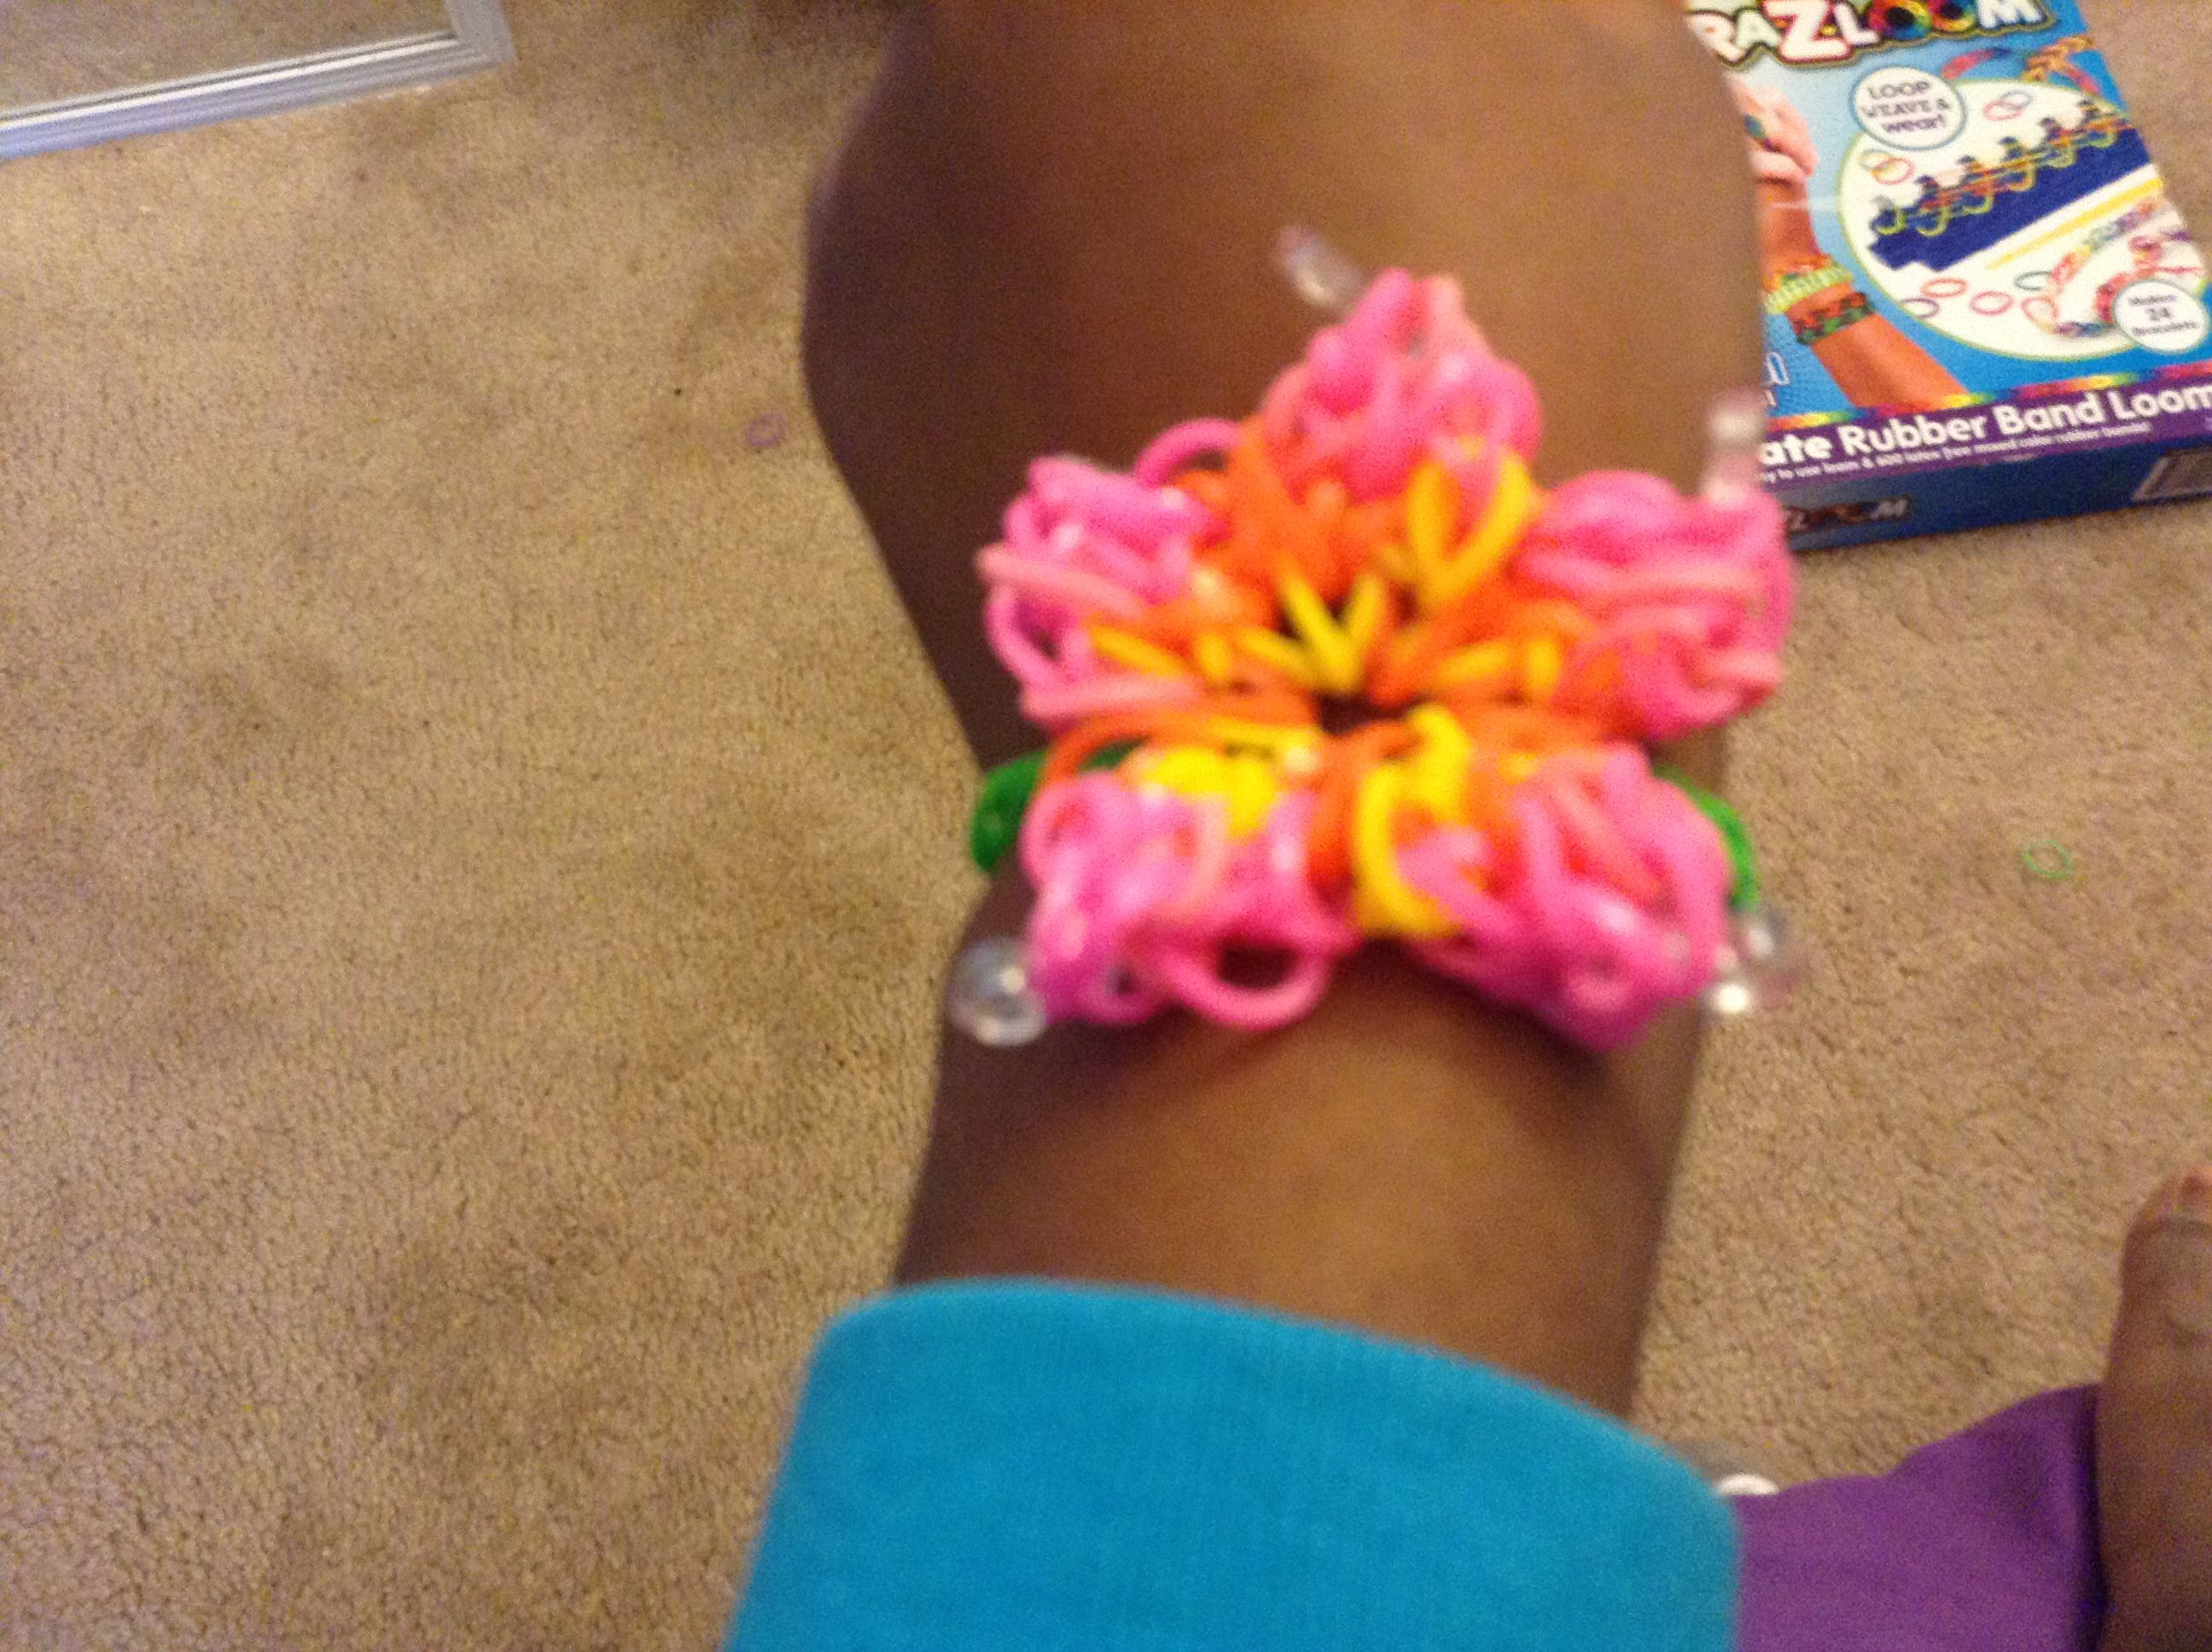 with and inspired jump how diy bracelet ideas inspiration of thrift forks fascinating pict two unbelievable store hibiscus concept pic make lin to without ring things making loom trend